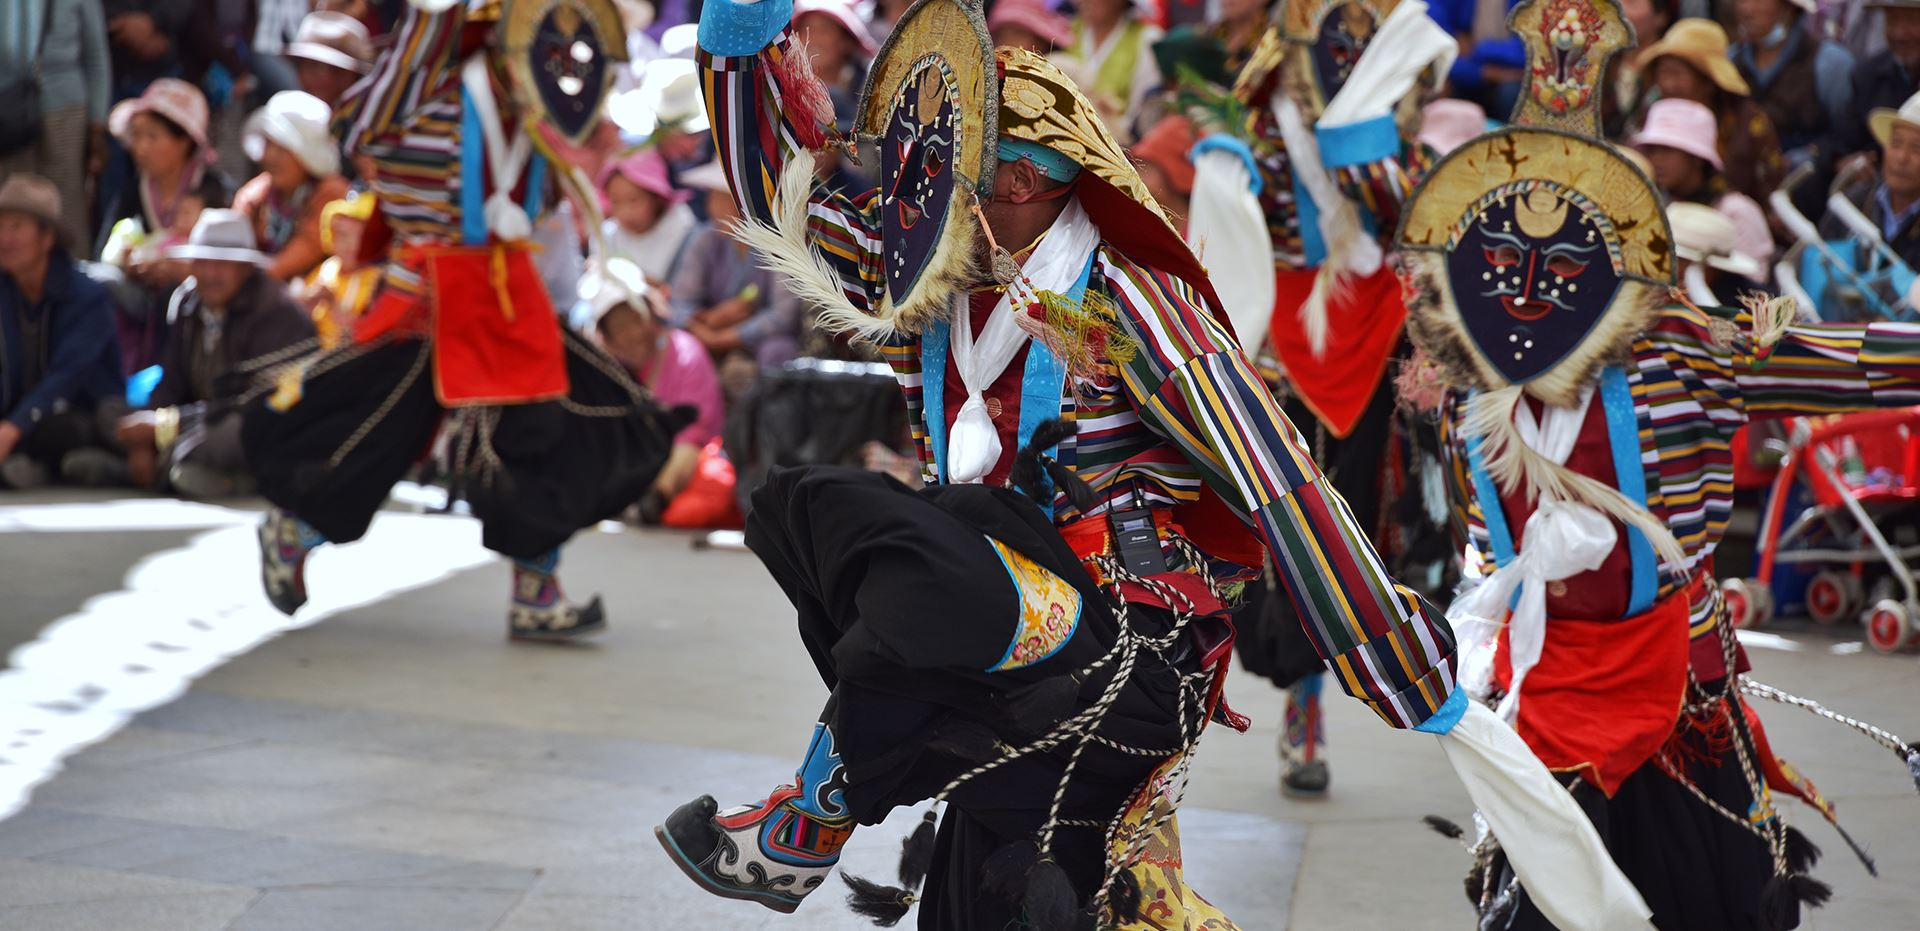 Tibet Tour during Shoton Festival in Lhasa and Horse Racing Festival in Naqu 2021